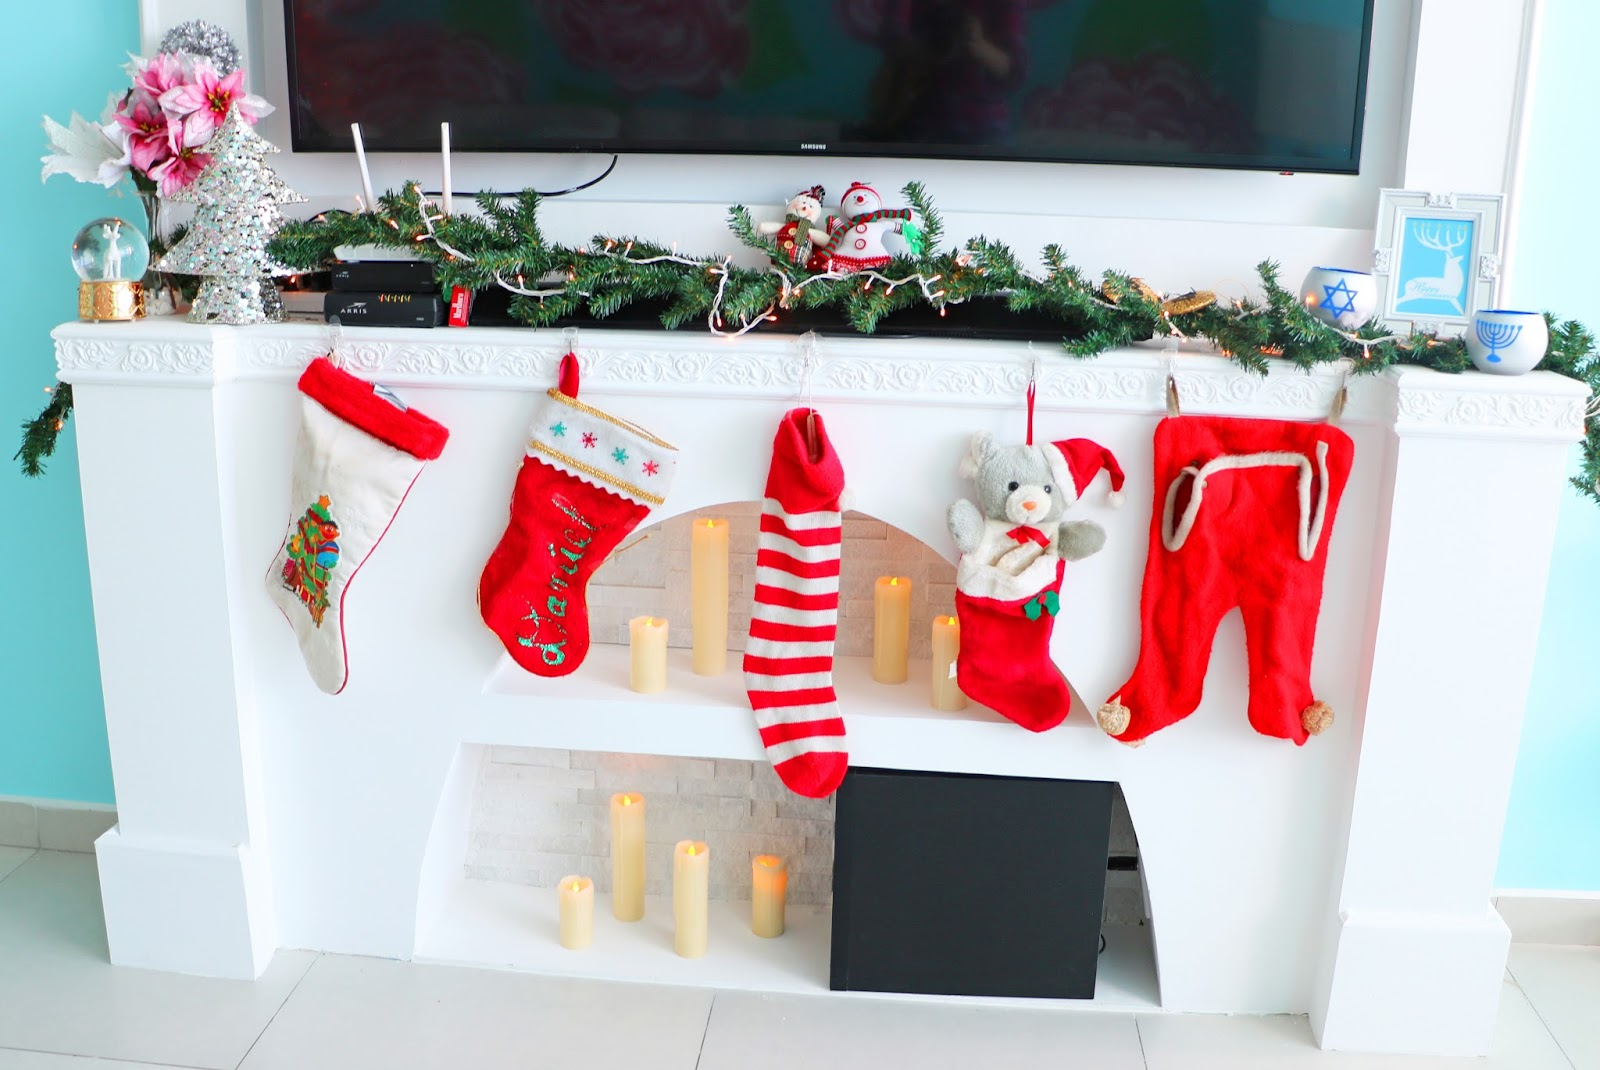 Christmas mantelpiece decor